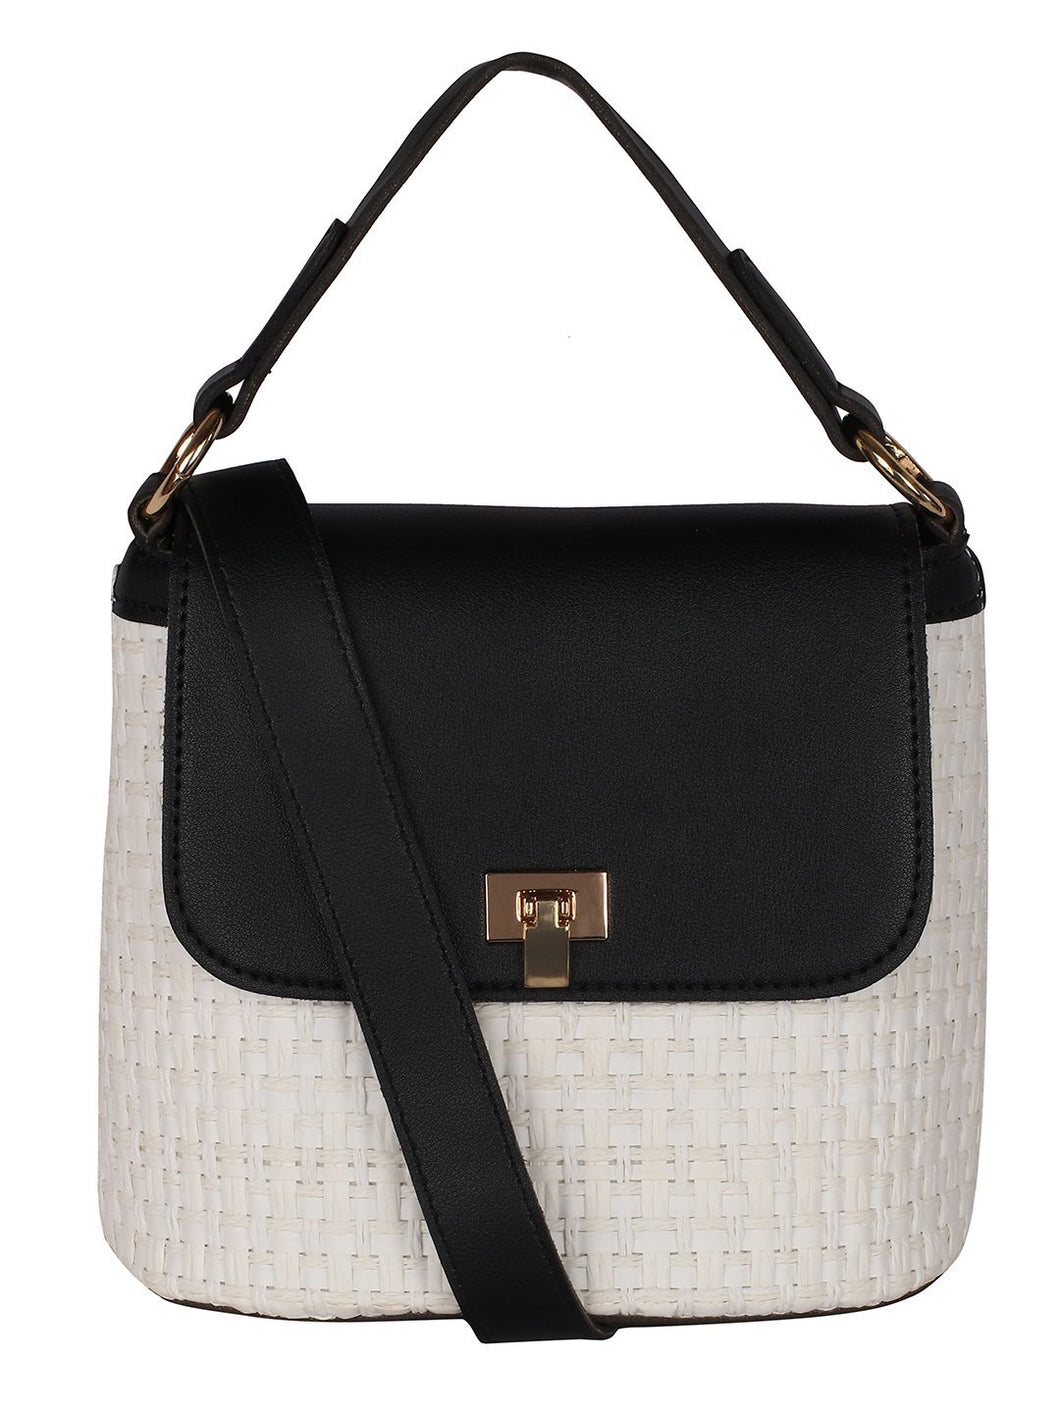 Pretty Me Handbag-Black